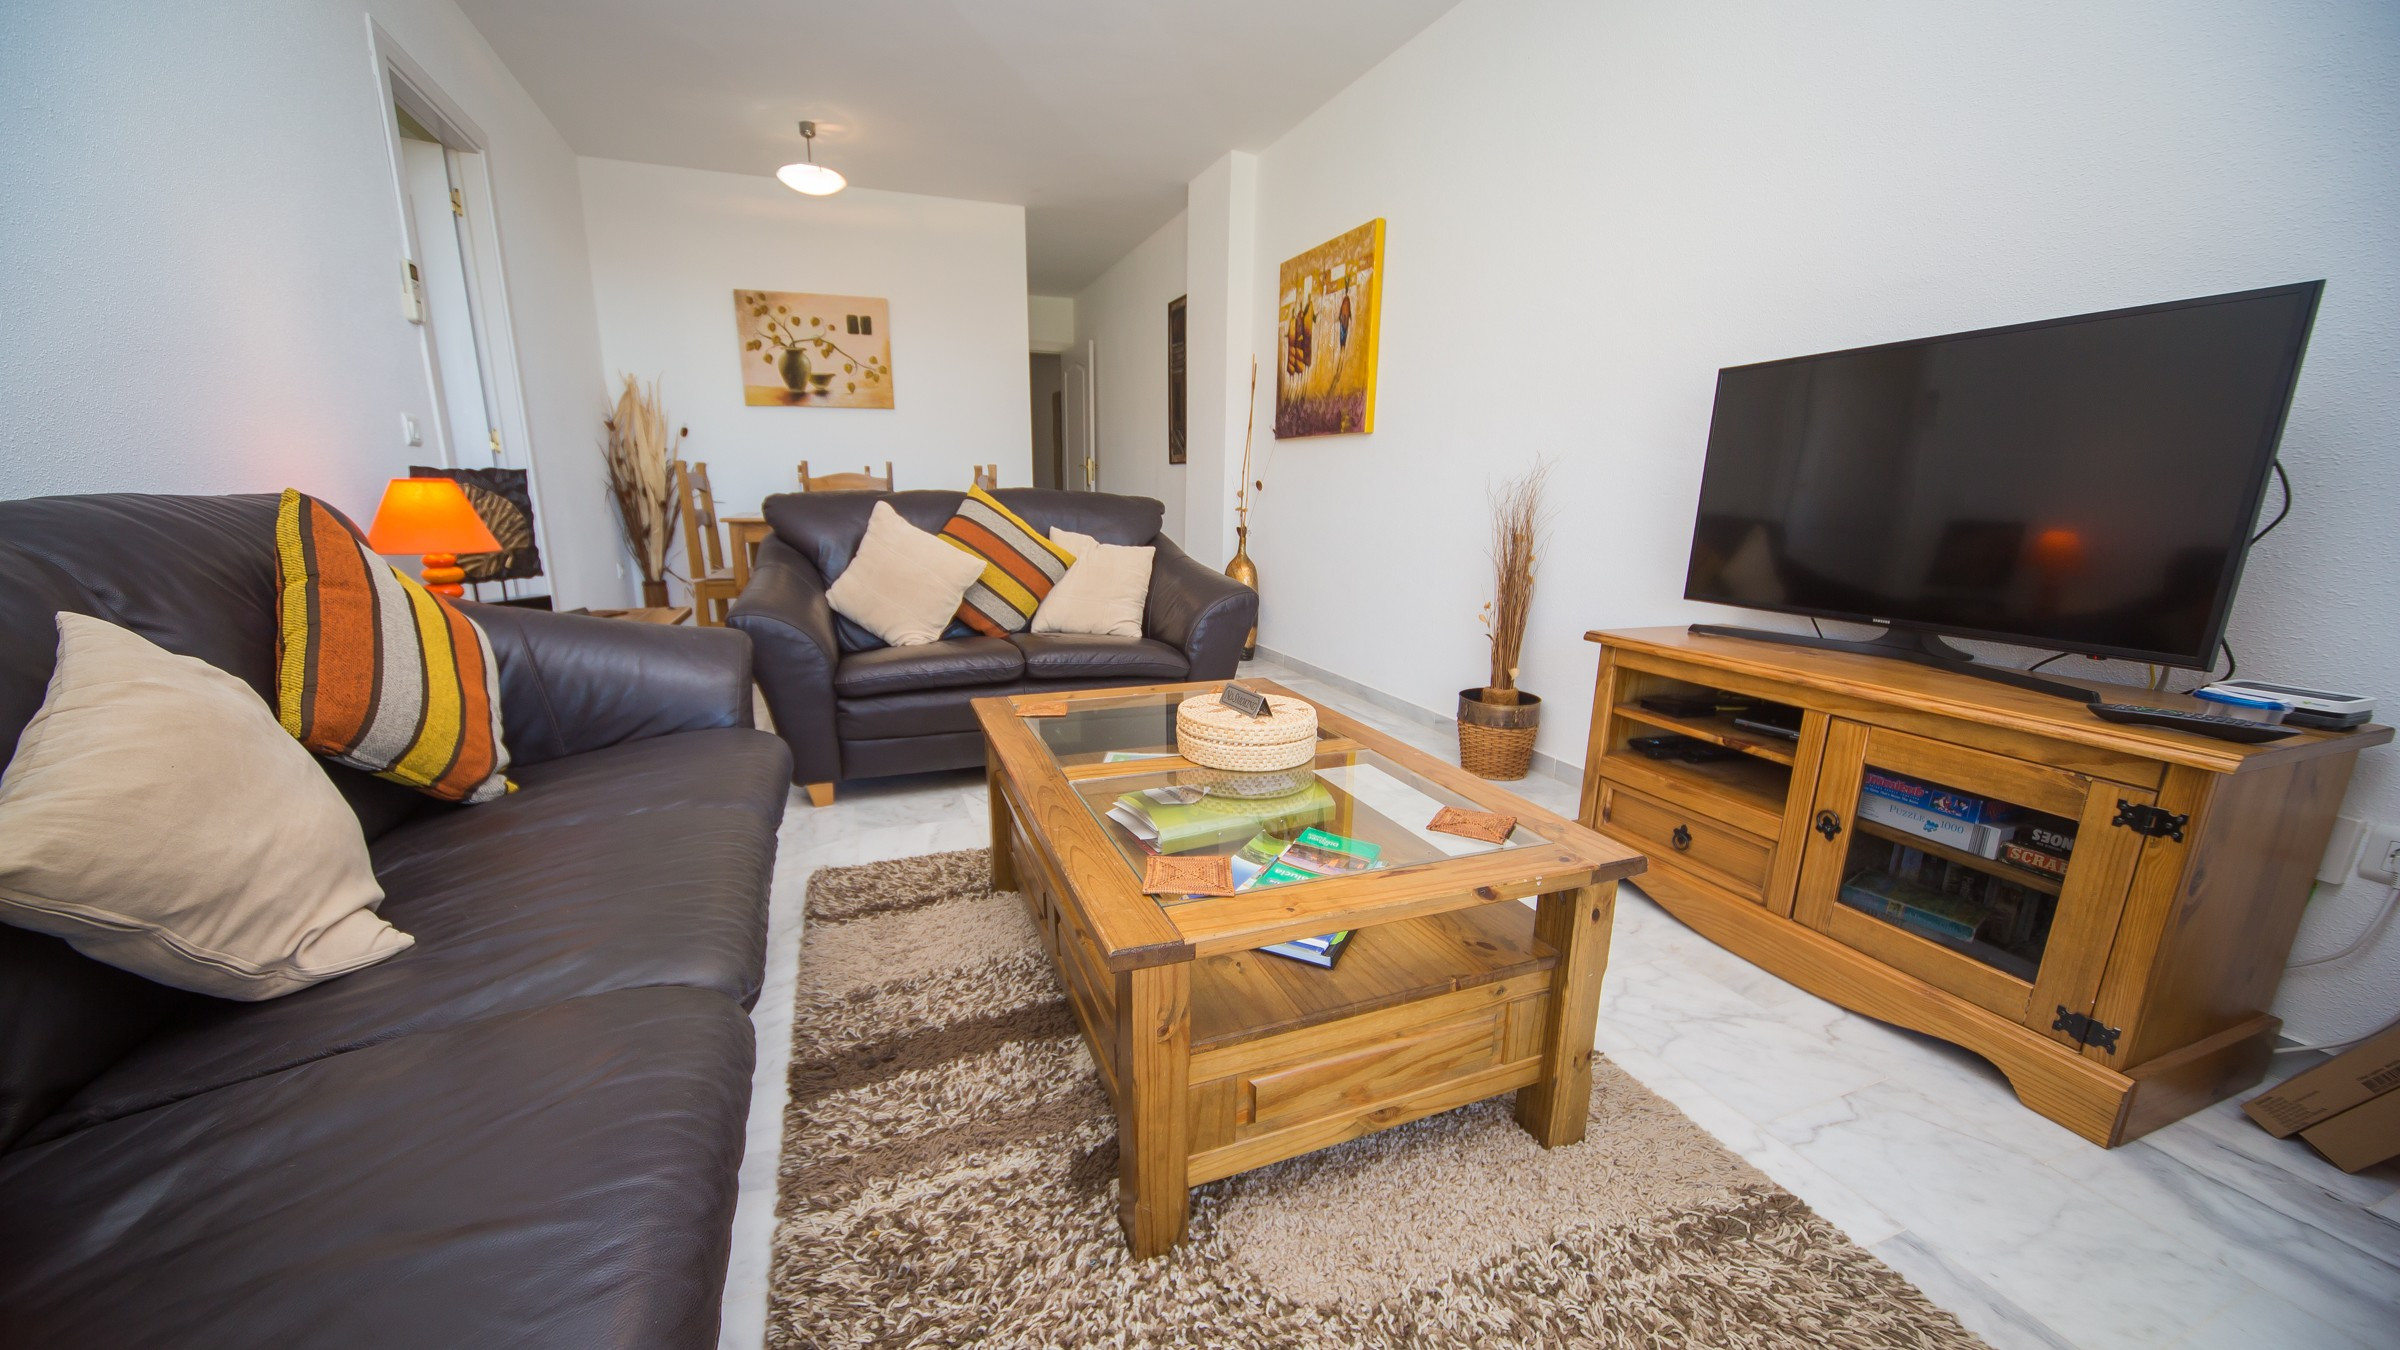 hardwood flooring green bay wi of apartments in casares hc pensamiento 0d inside apartment in casares hc pensamiento 0d